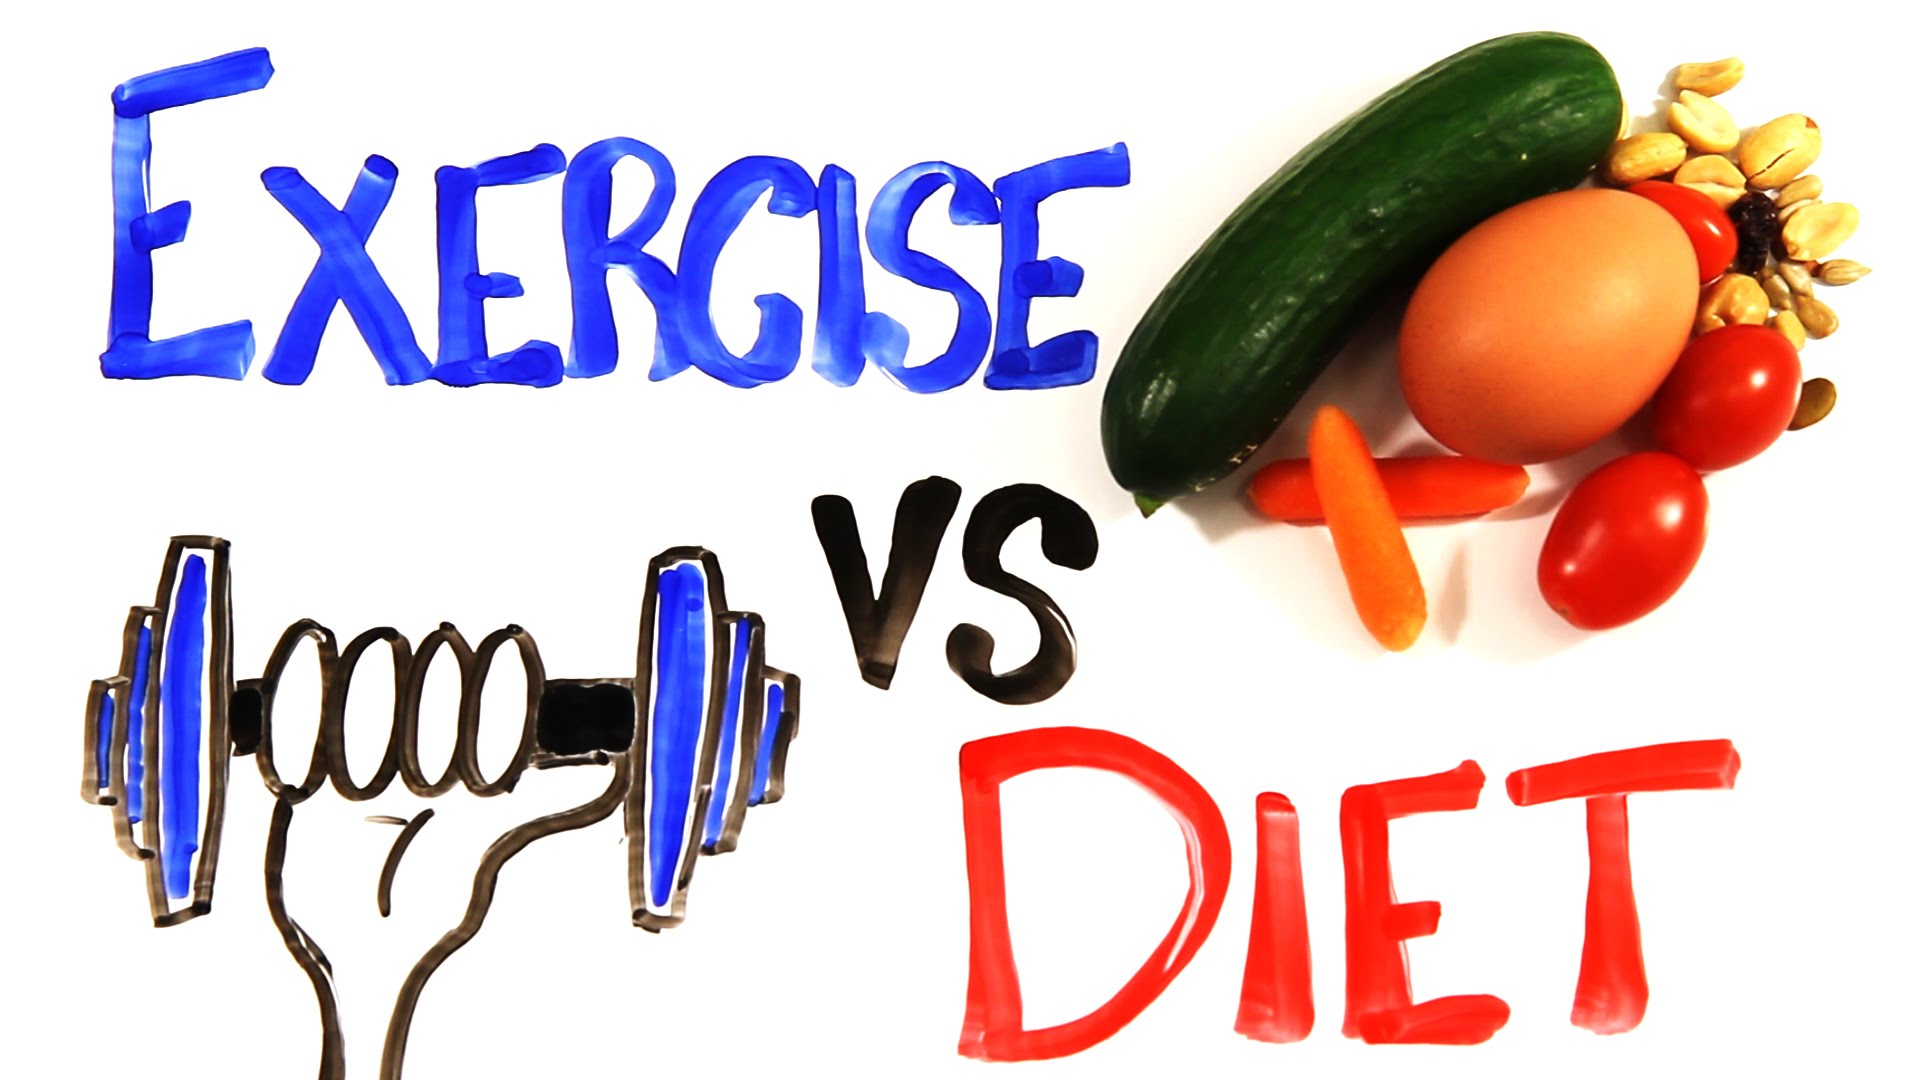 is weight loss diet or exercise